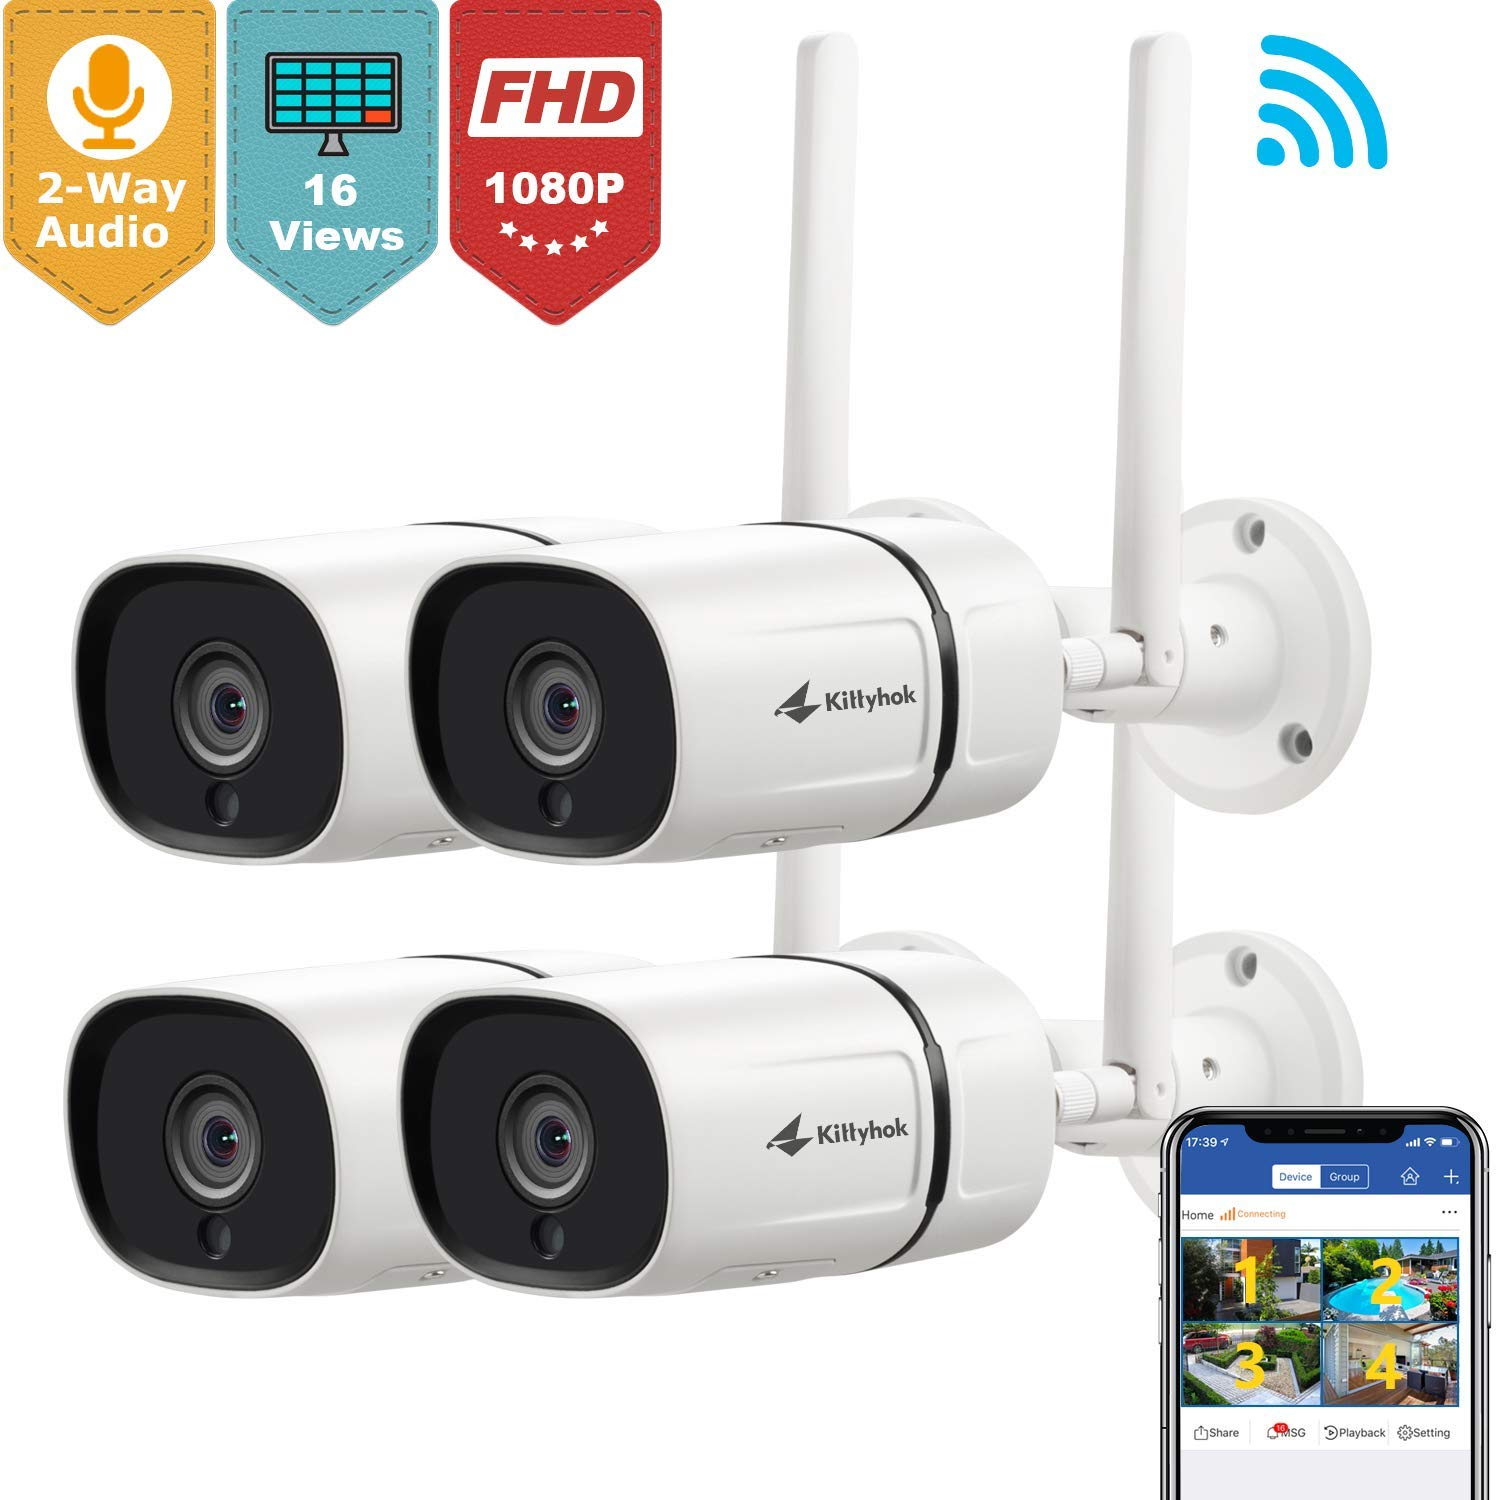 Kittyhok Outdoor Wireless Security Camera, 1080P Full HD 2.4GHz WiFi IP Bullet Cameras with Two-Way Audio/Motion Detection/Night Vision/ Ip65 Weatherproof Remote Surveillance Monitor (4-Pack)